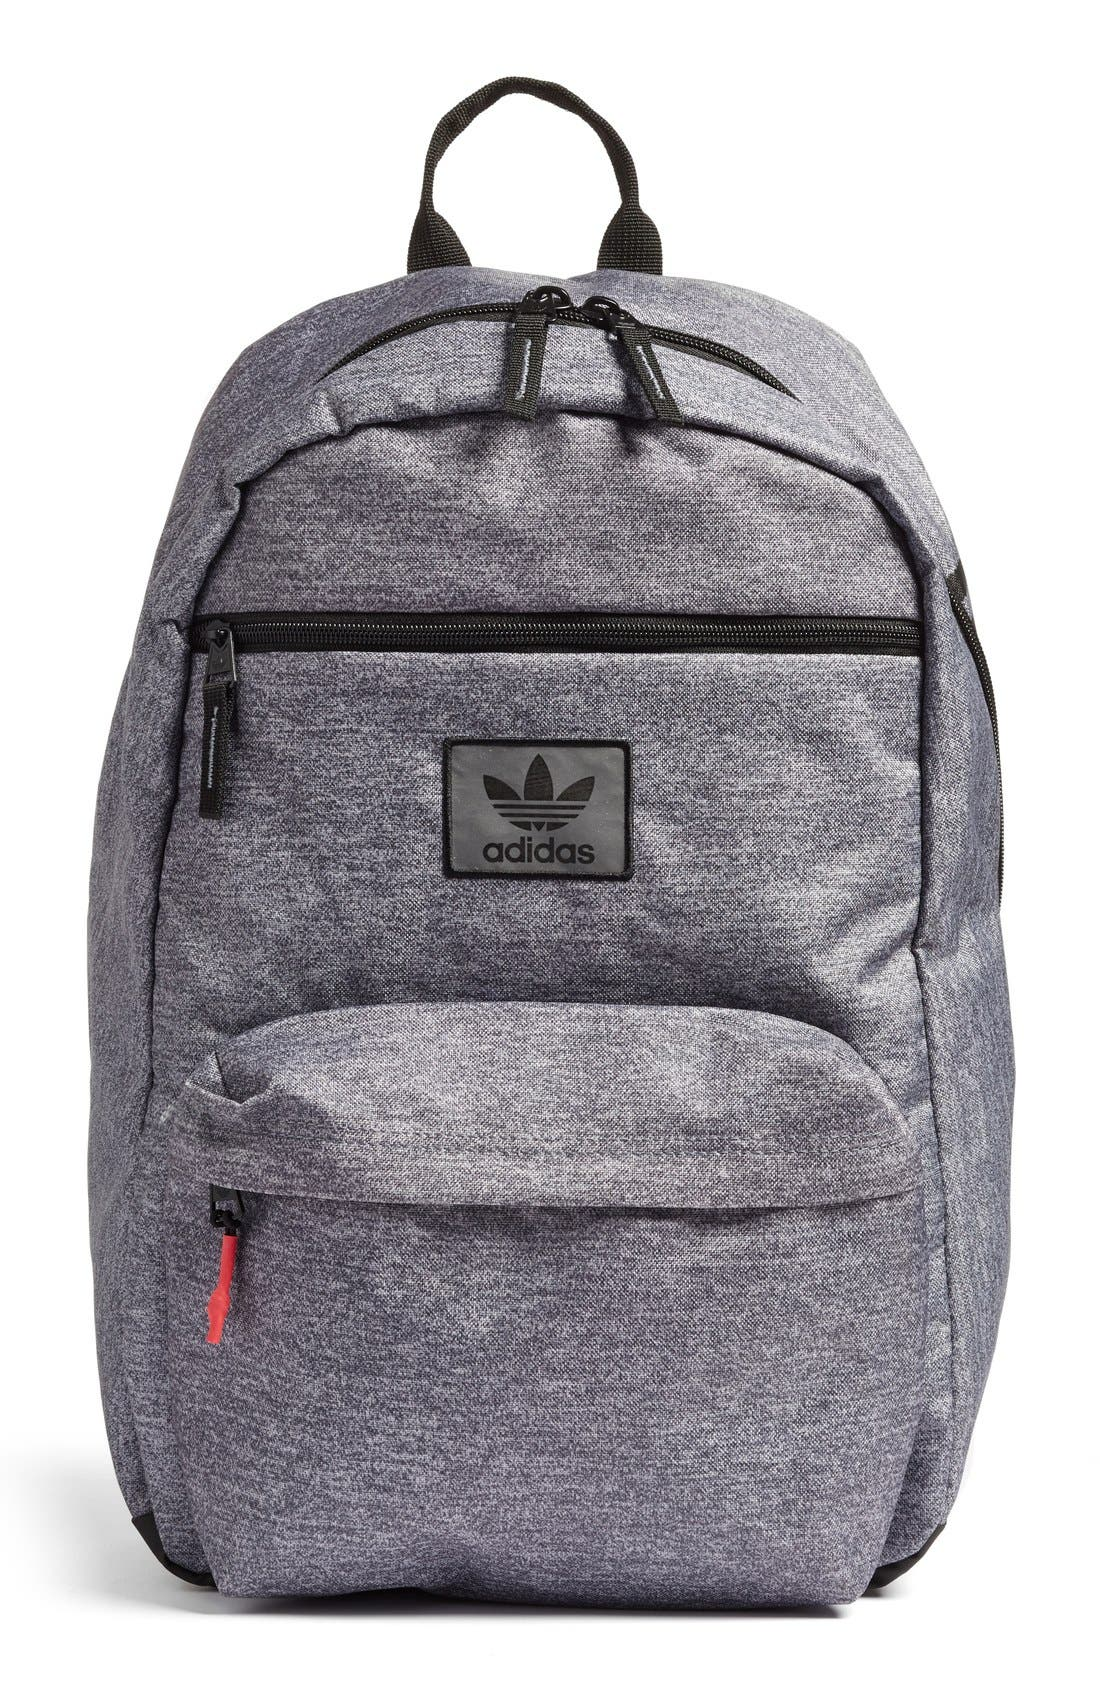 Main Image - adidas Originals 'National' Backpack